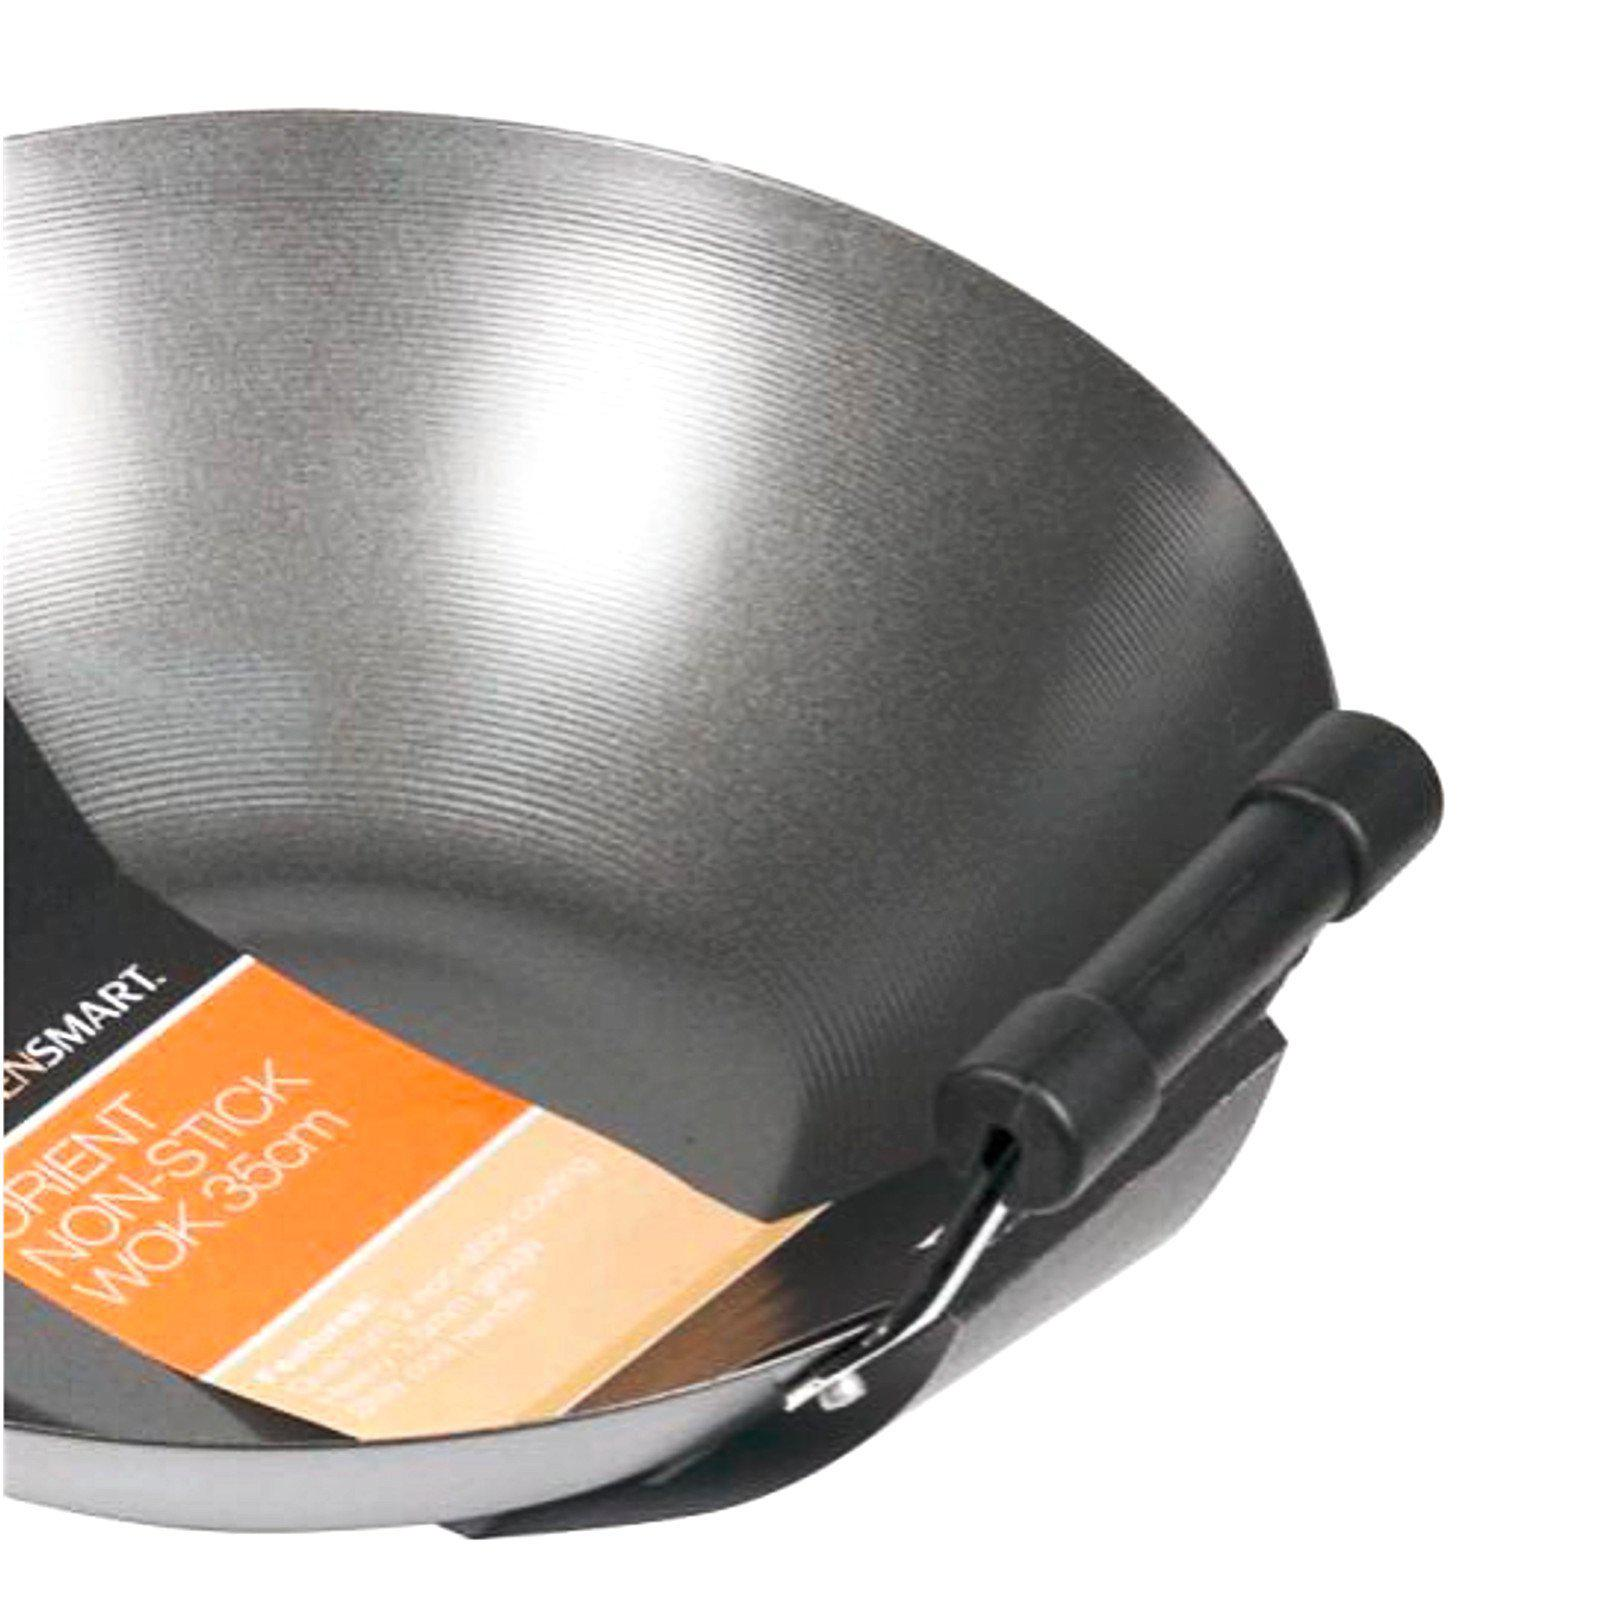 Kitchen Smart Orient Non-Stick Wok 35cm-wok-Chef's Quality Cookware